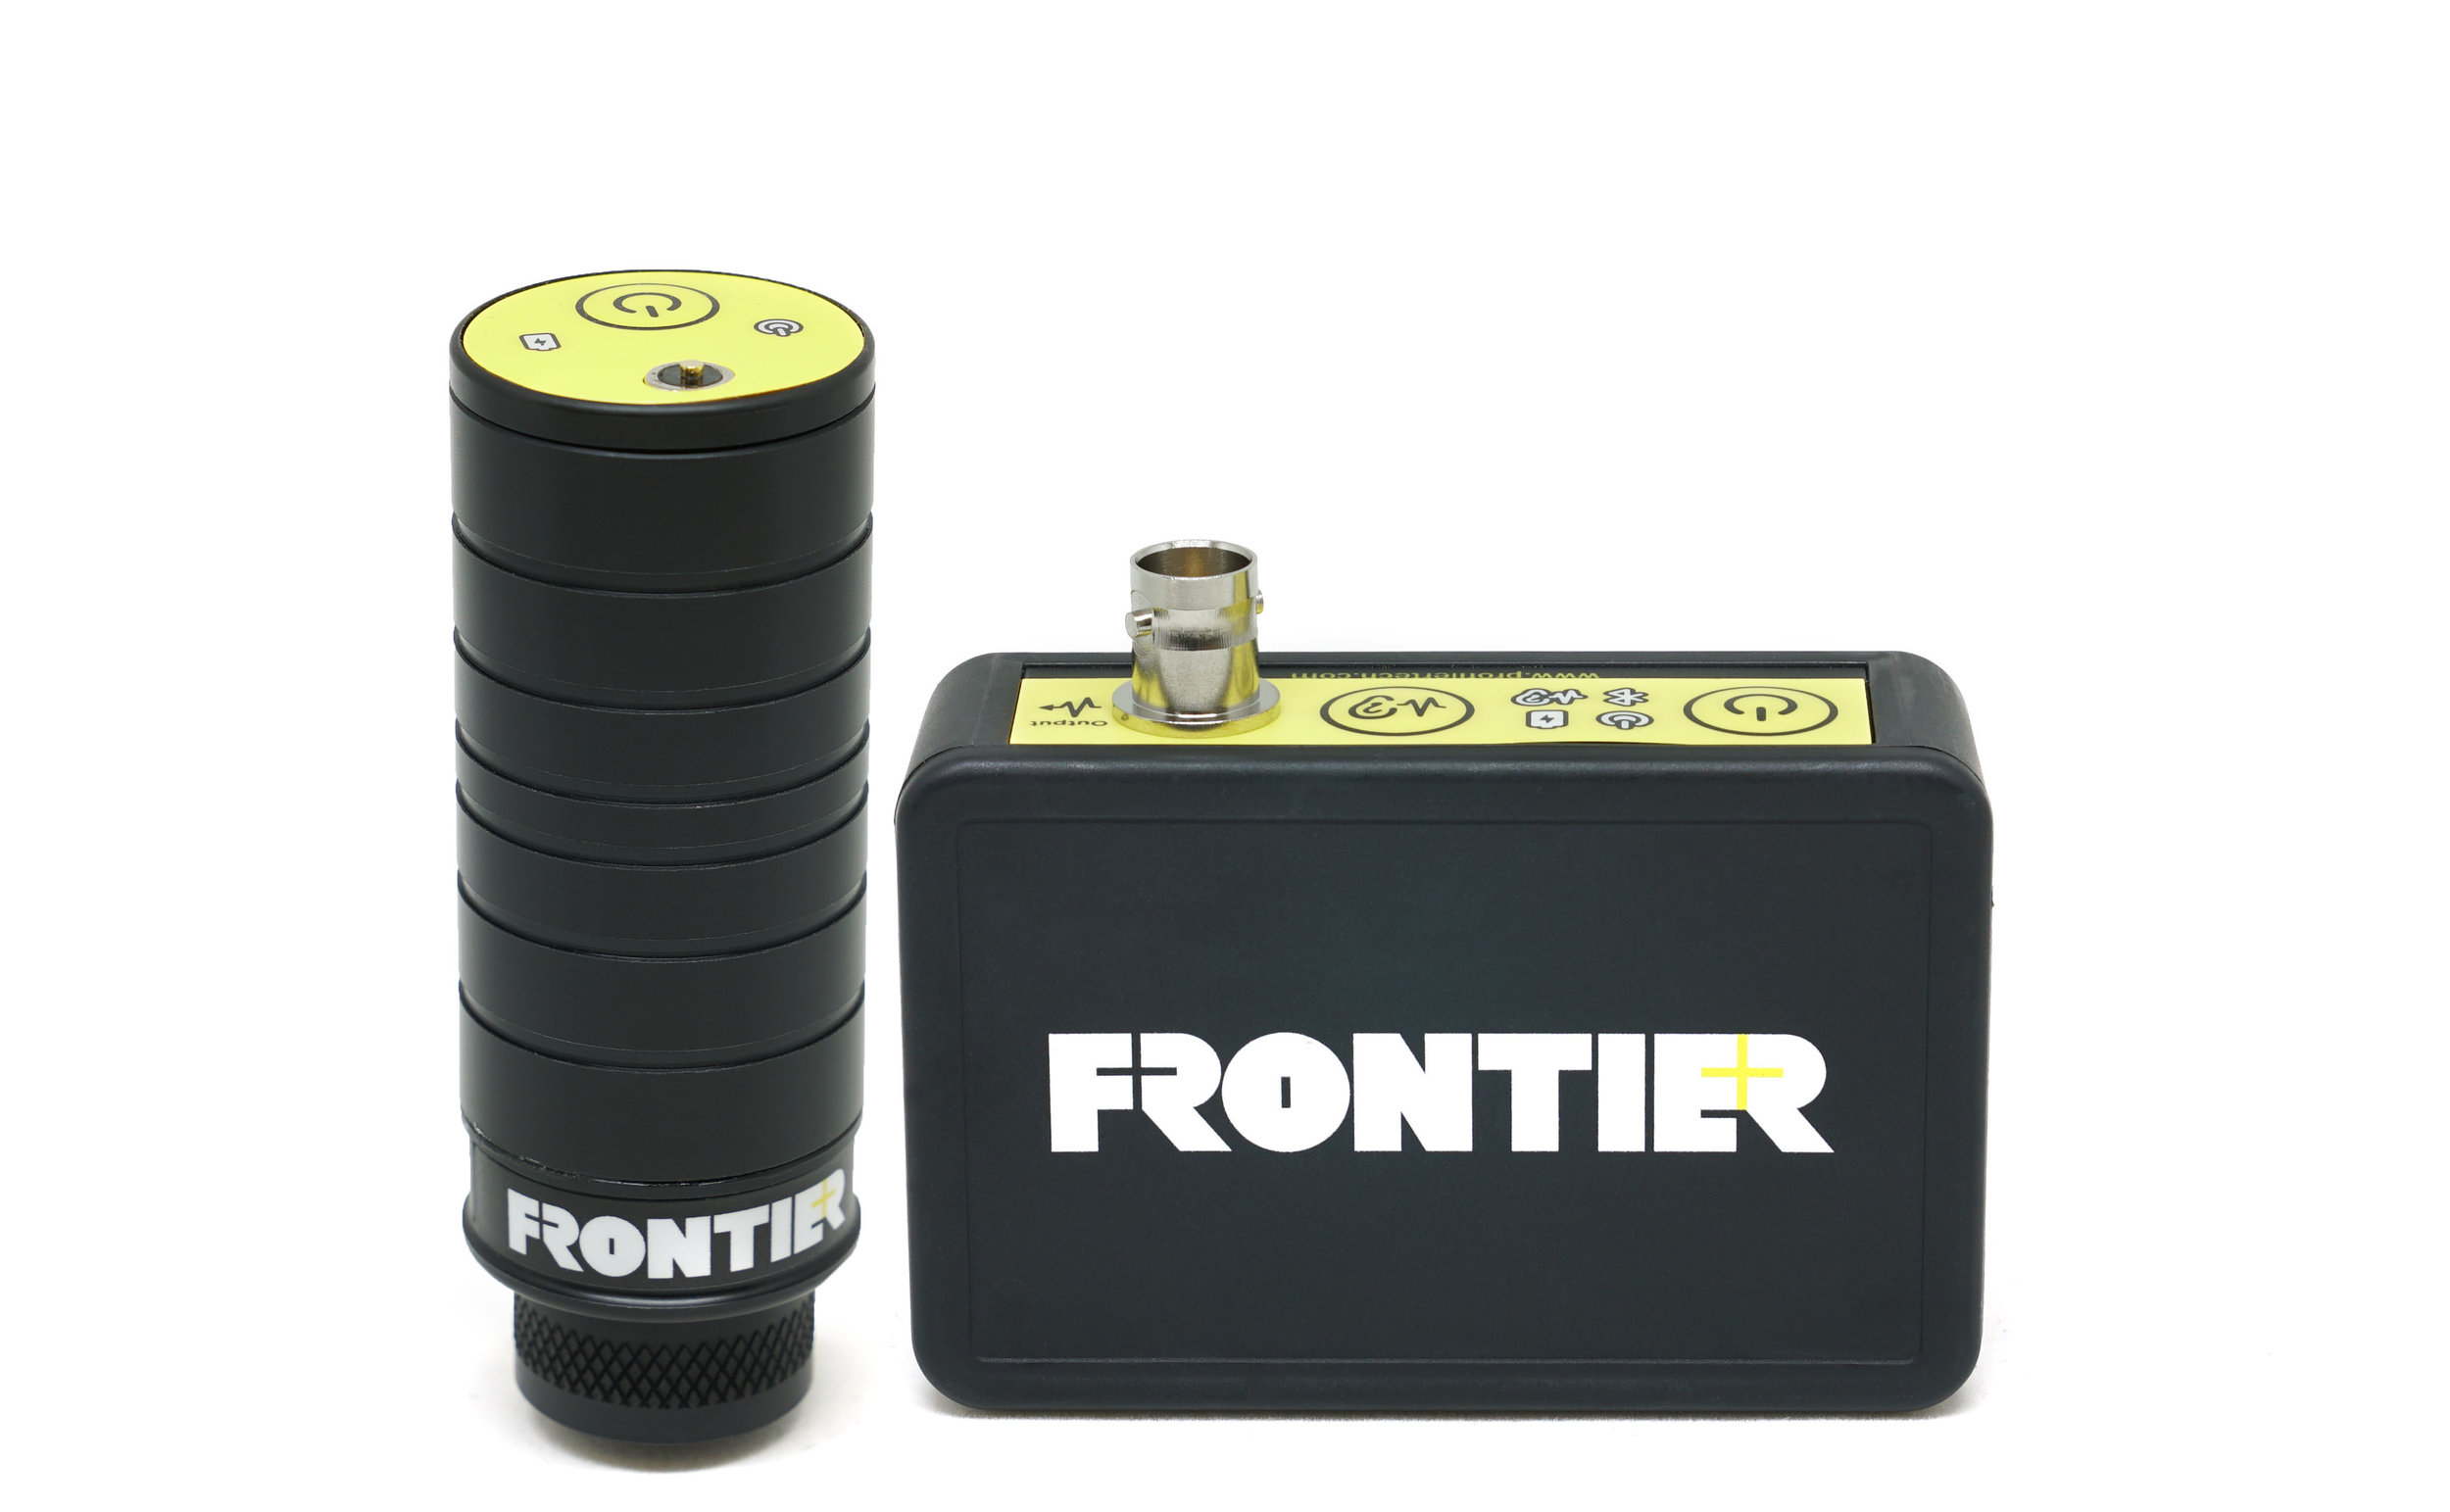 Frontier Front On.jpg